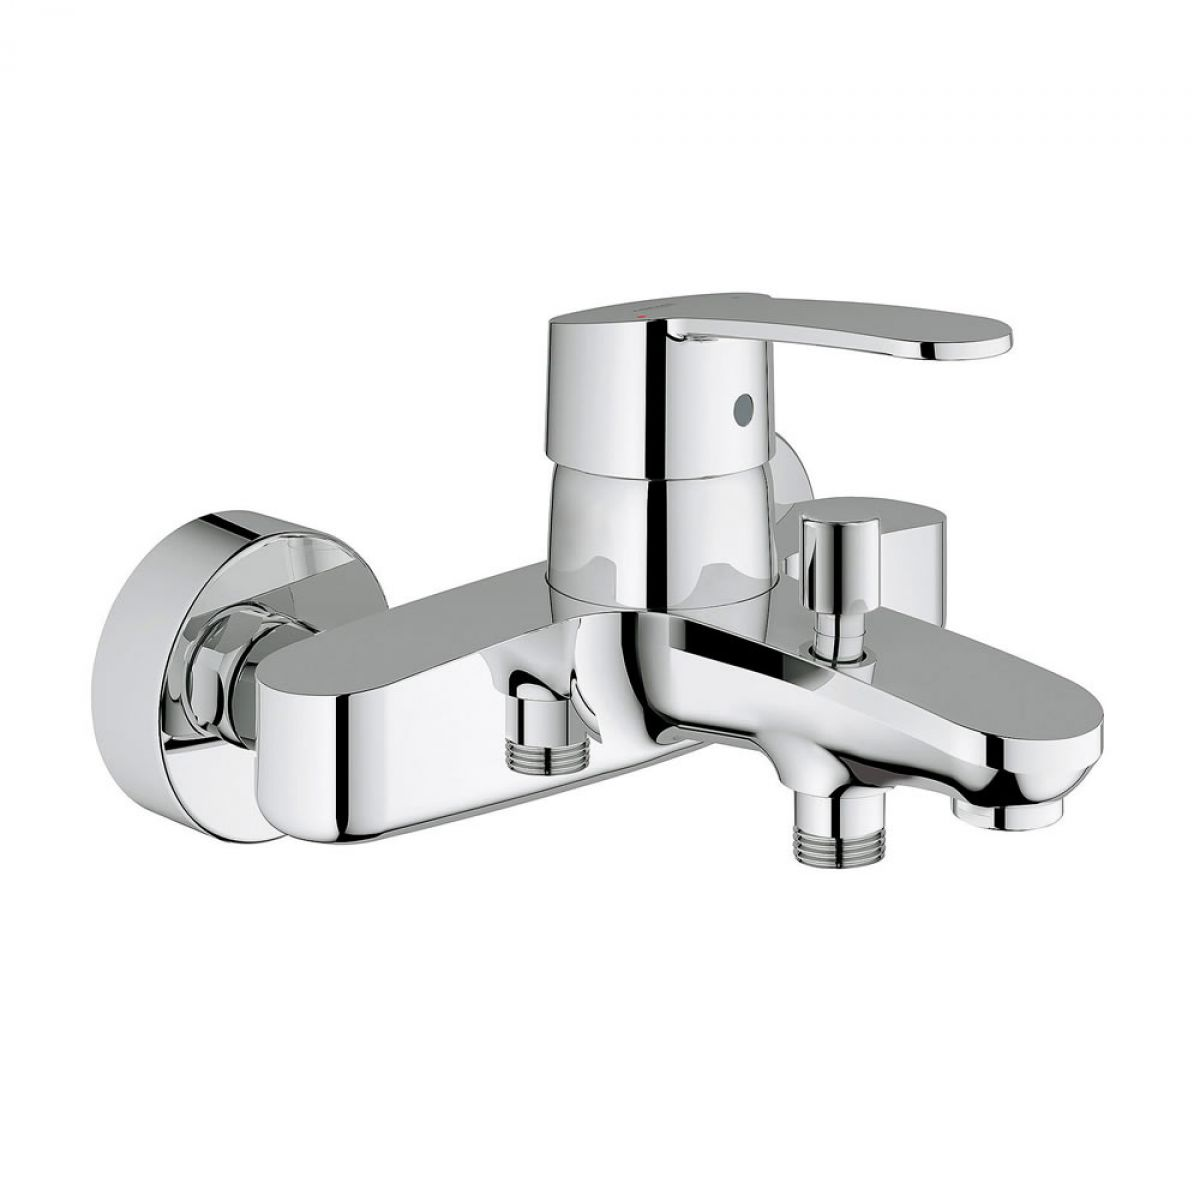 grohe eurostyle cosmopolitan wall mounted bath shower mixer uk bathrooms. Black Bedroom Furniture Sets. Home Design Ideas